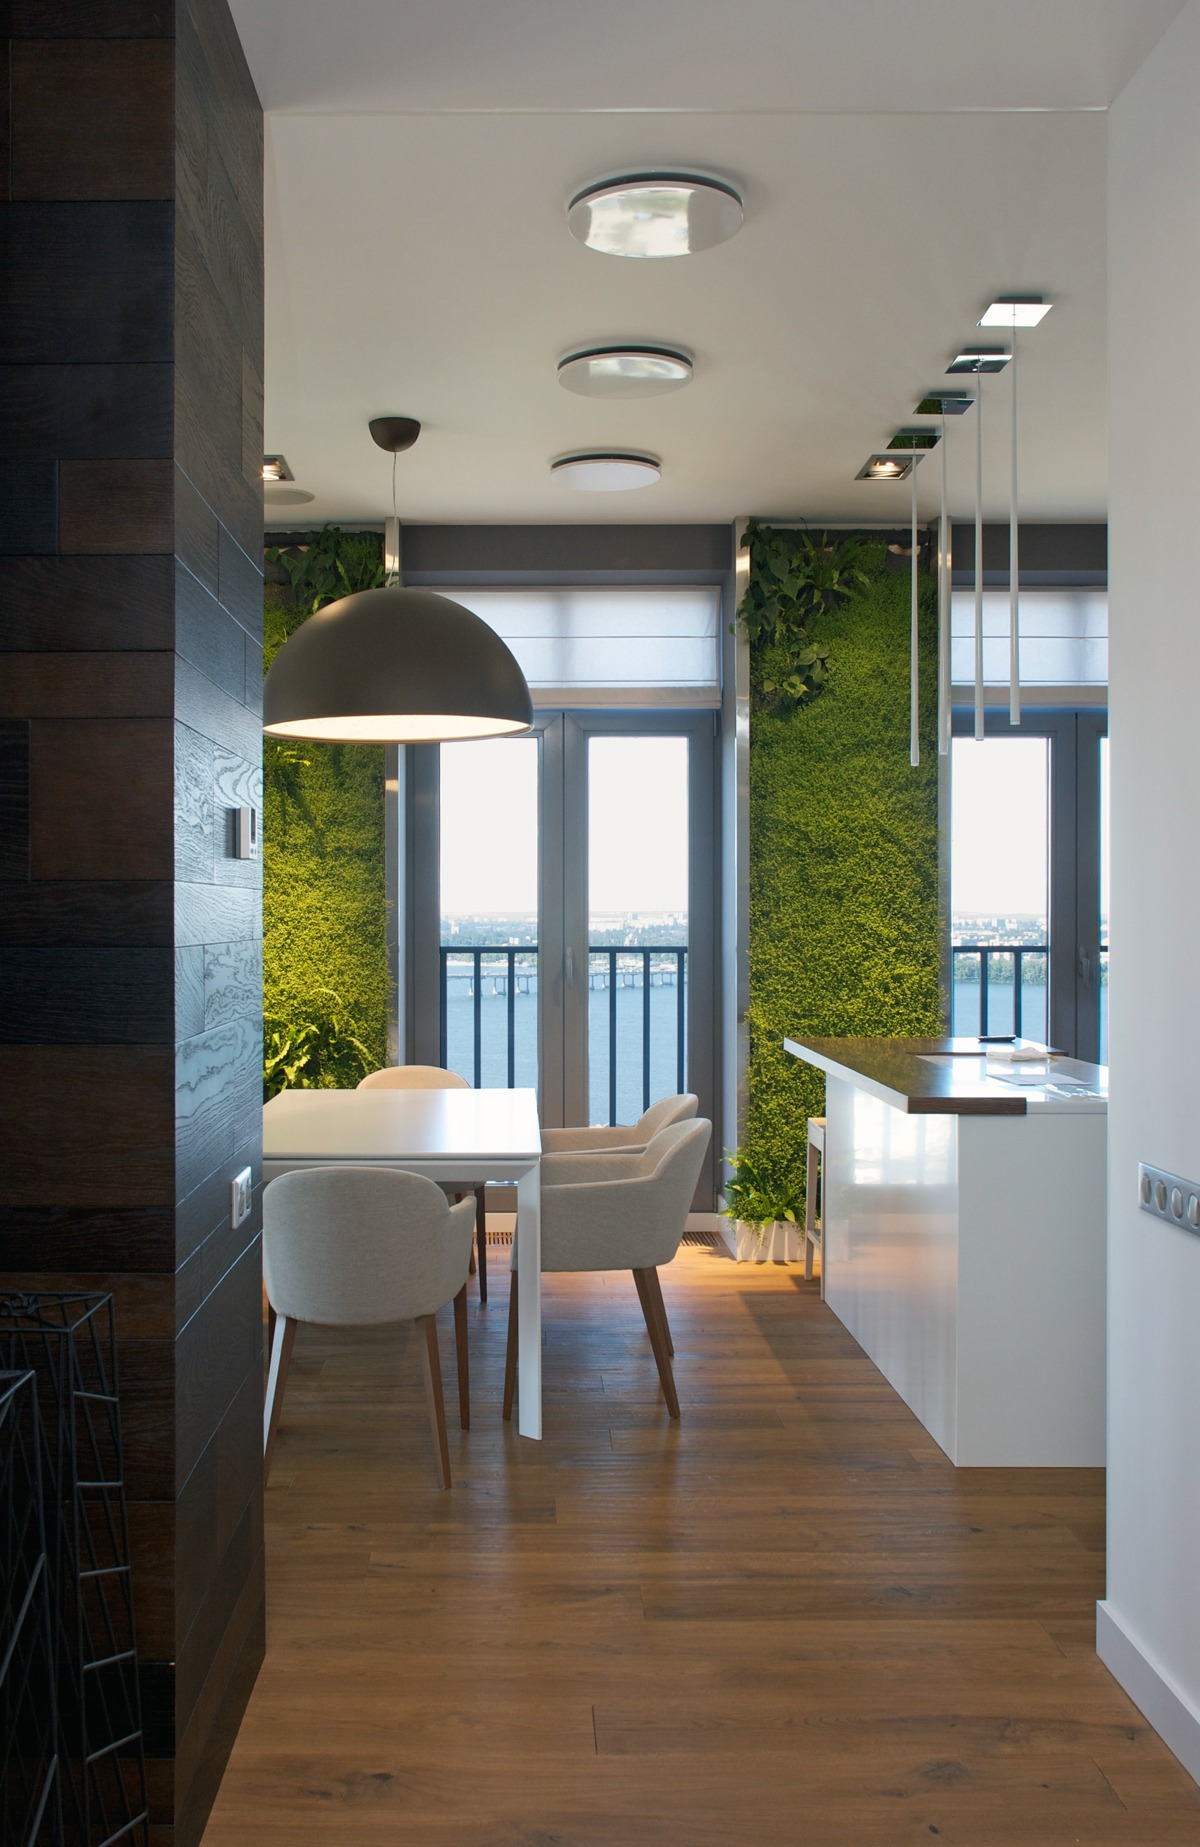 Vertical garden walls add life to apartment interior for Modern apartment interior